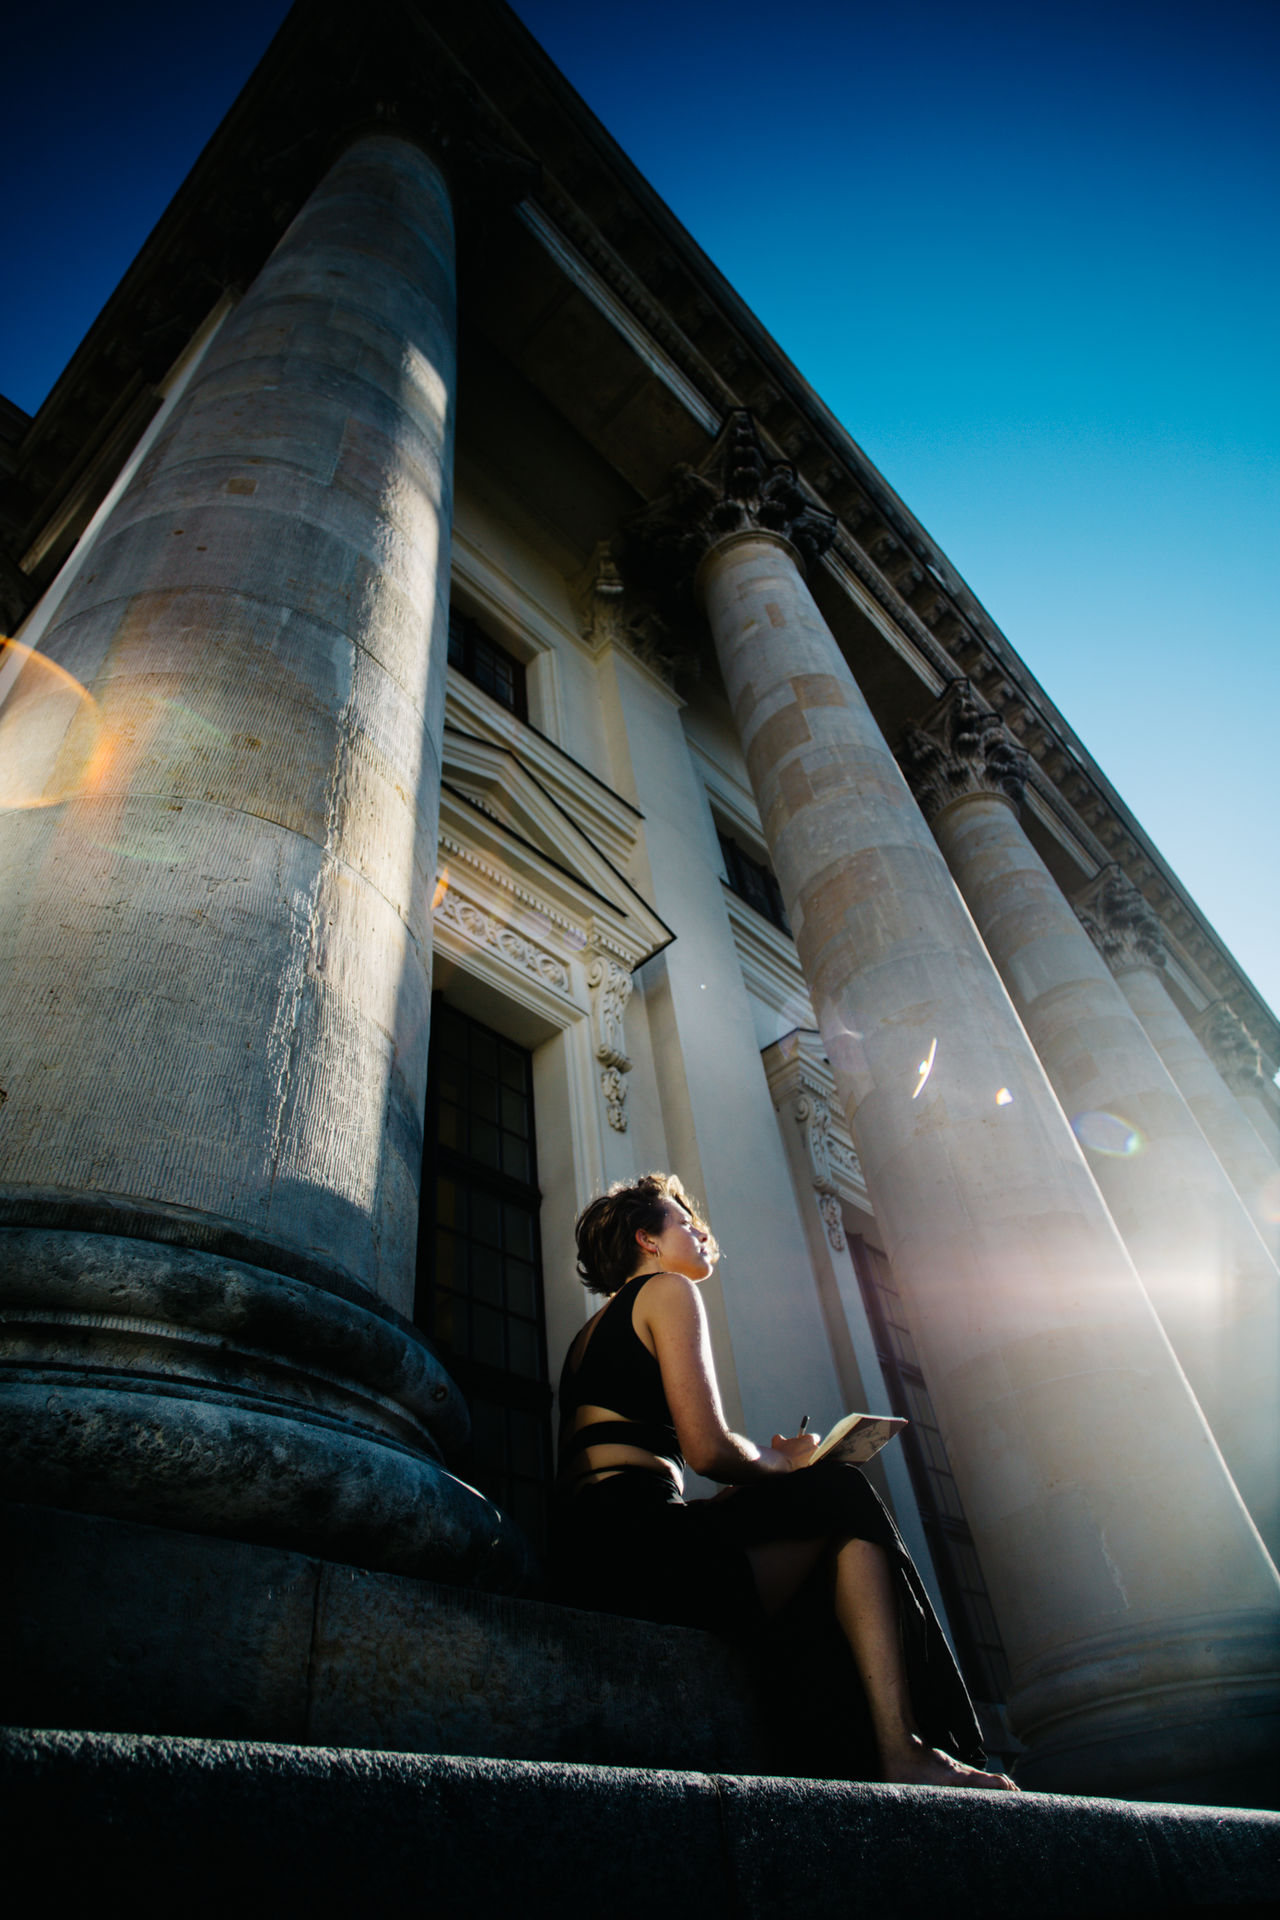 Architectural Column Architecture Beauty In Eye Of Beholder Berlin Berlin Photography Built Structure Day Girl Lifestyles One Person Sky Sunlight The Portraitist - 2017 EyeEm Awards The Street Photographer - 2017 EyeEm Awards Writer Young Young Adult Young Women